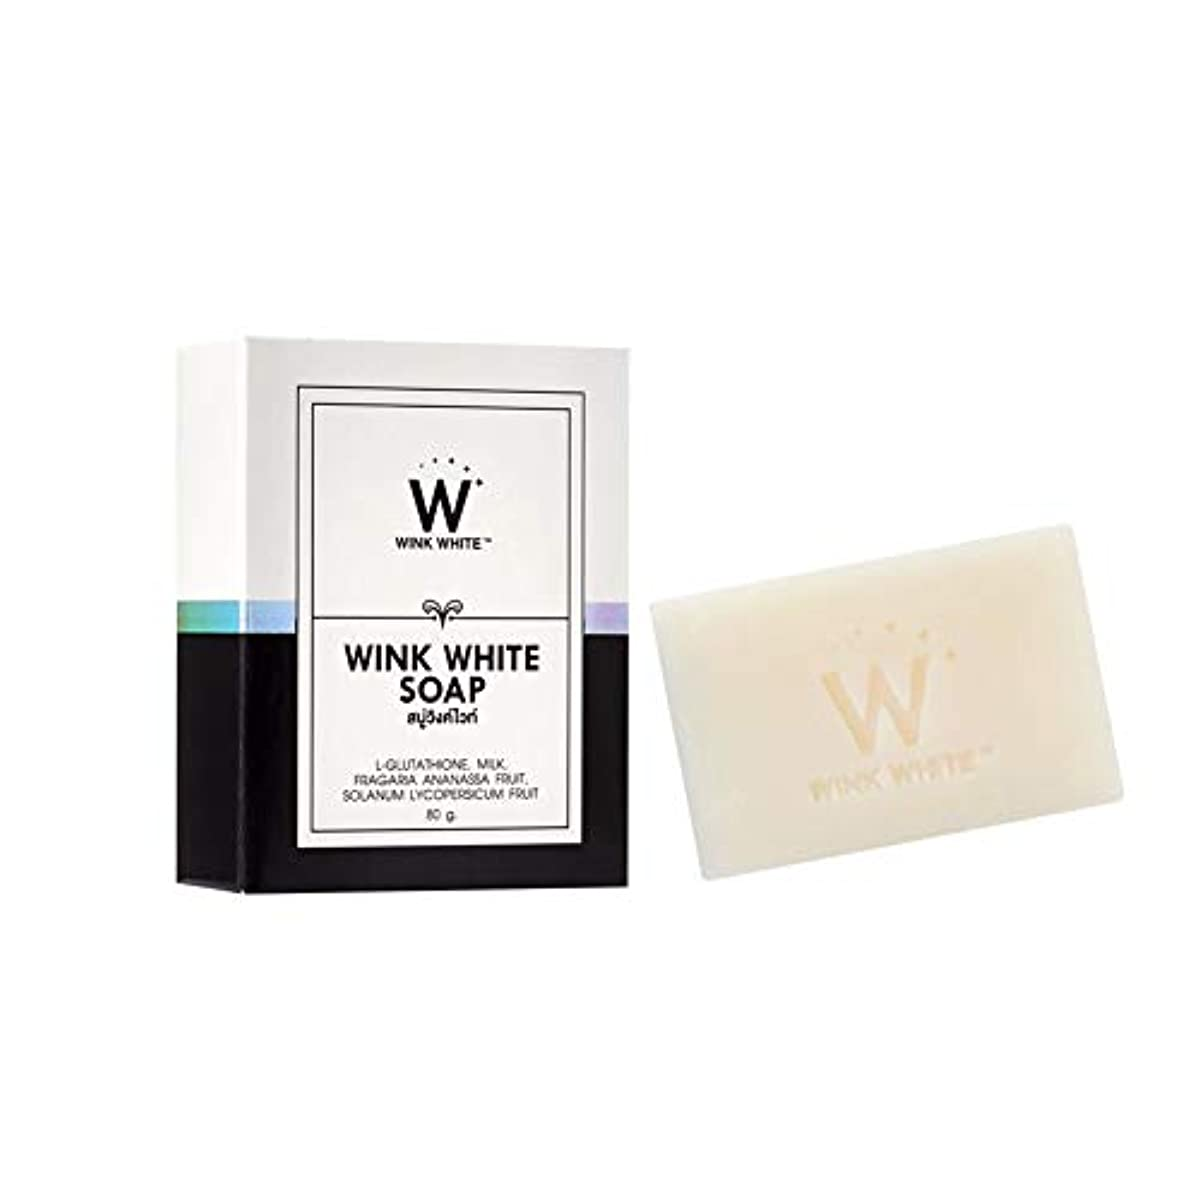 あいまいさ見て疲労Soap Net Nature White Soap Base Wink White Soap Gluta Pure Skin Body Whitening Strawberry for Whitening Skin All...